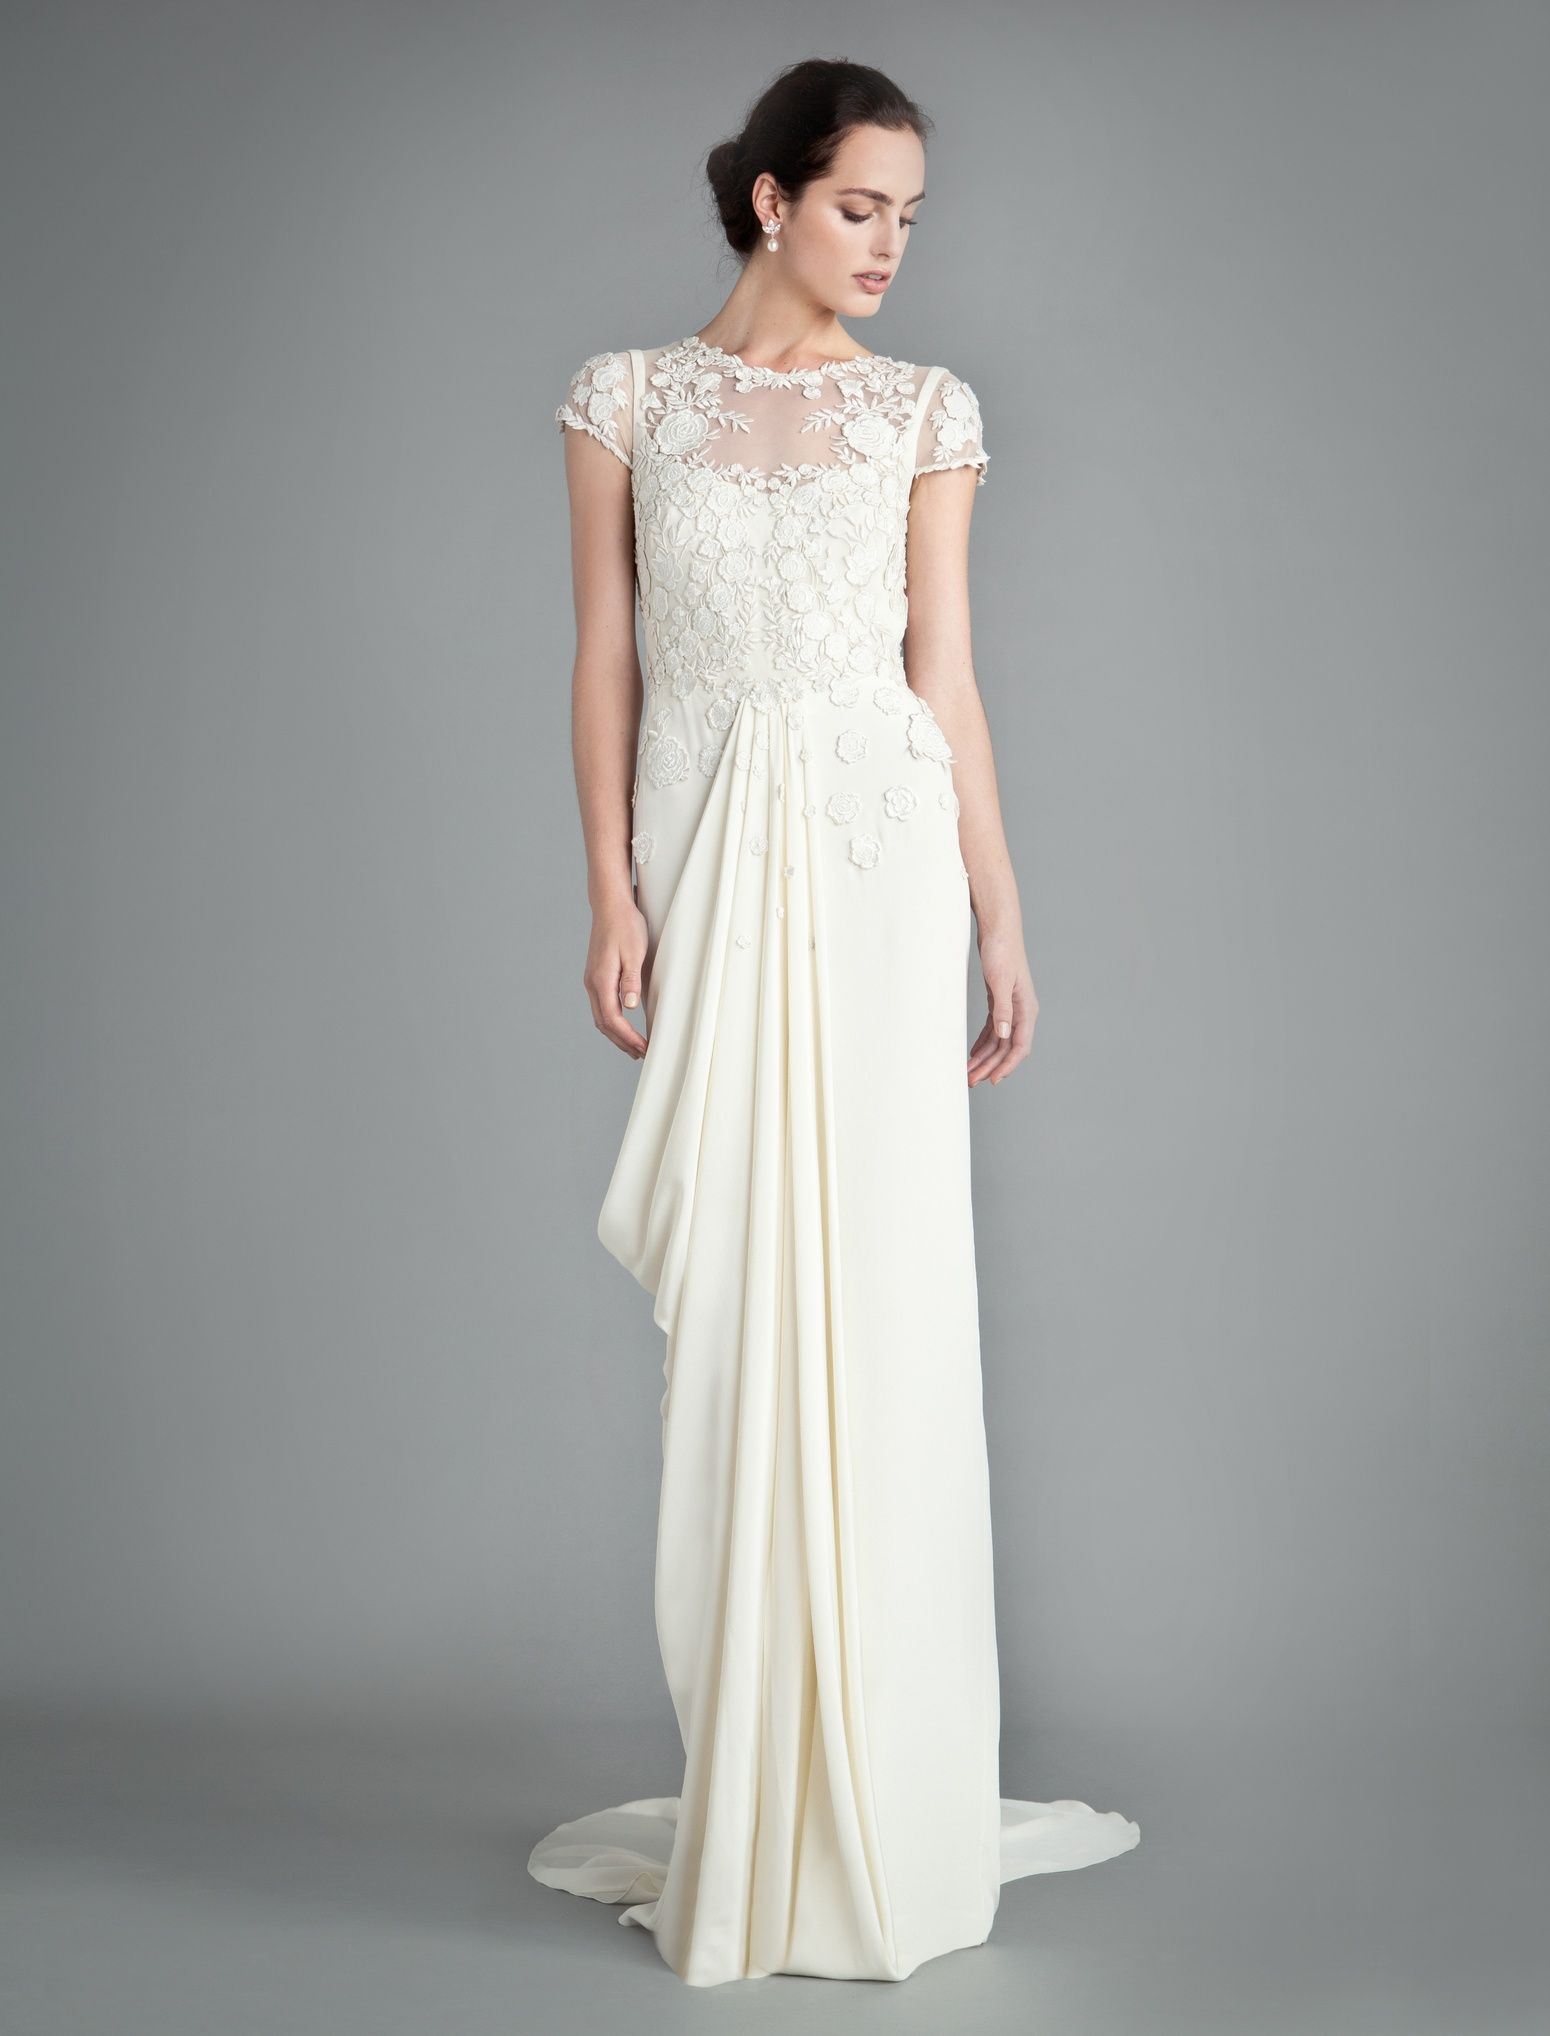 Couture wedding dresses london  Alice Temperley Launches The Beatrice  Collectionu  Pinterest